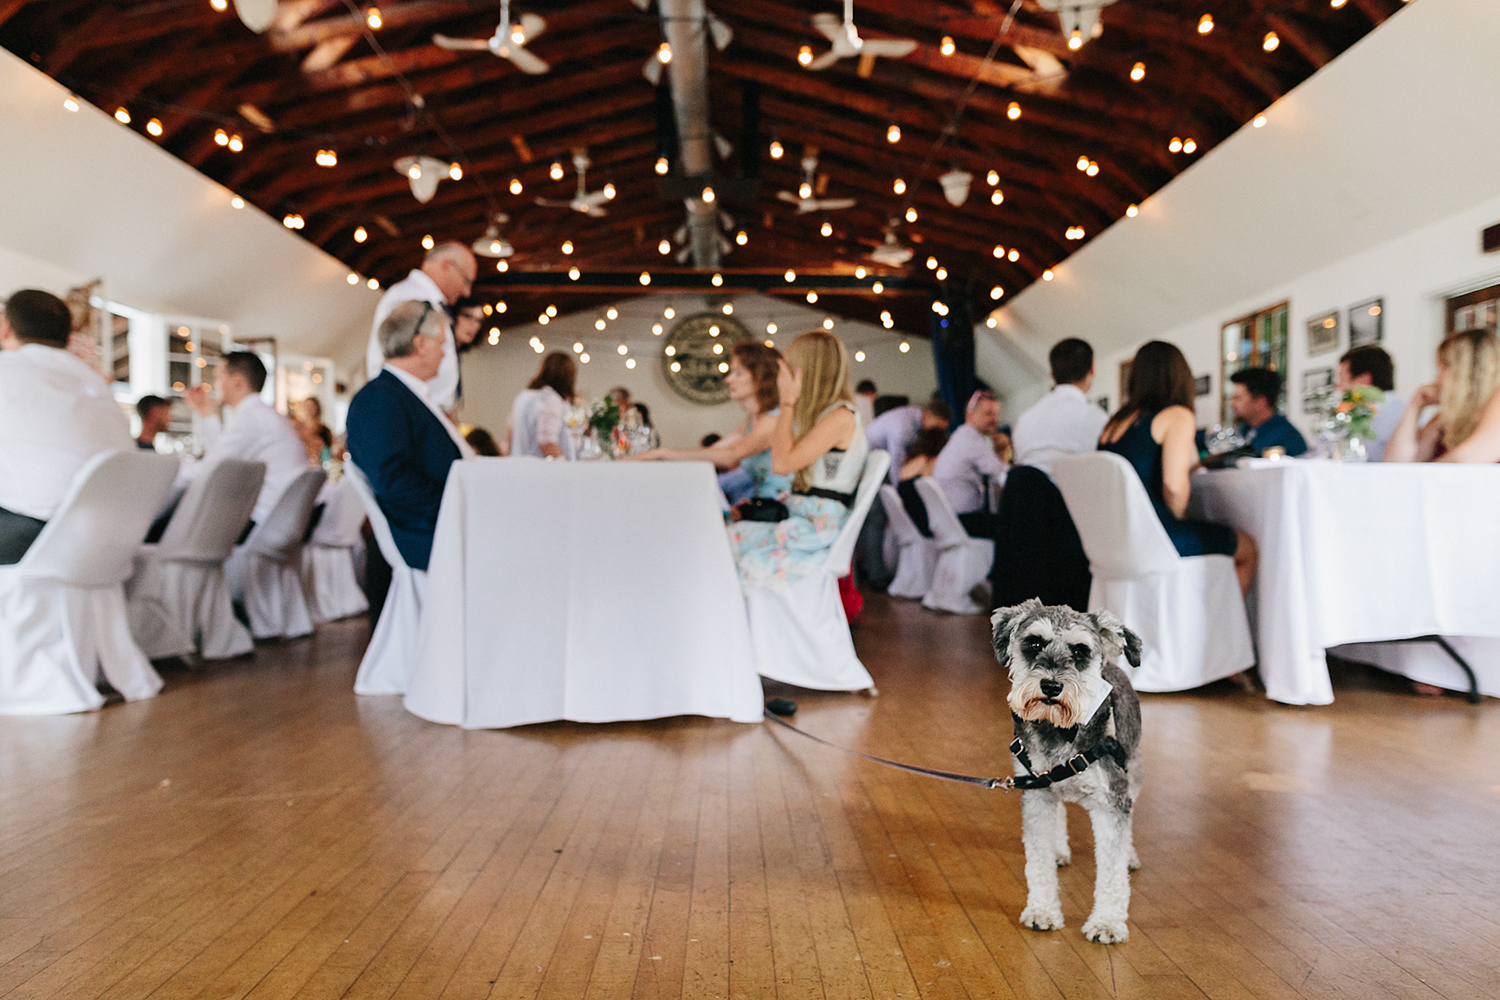 Toronto-Island-Wedding-Toronto-Best-Film-Wedding-Photographers-3b-photography-analog-photography-wards-island-clubhouse-junebug-weddings-vintage-venue-reception-in-old-clubhouse-otto-the-terrier-dog-chilling.jpg